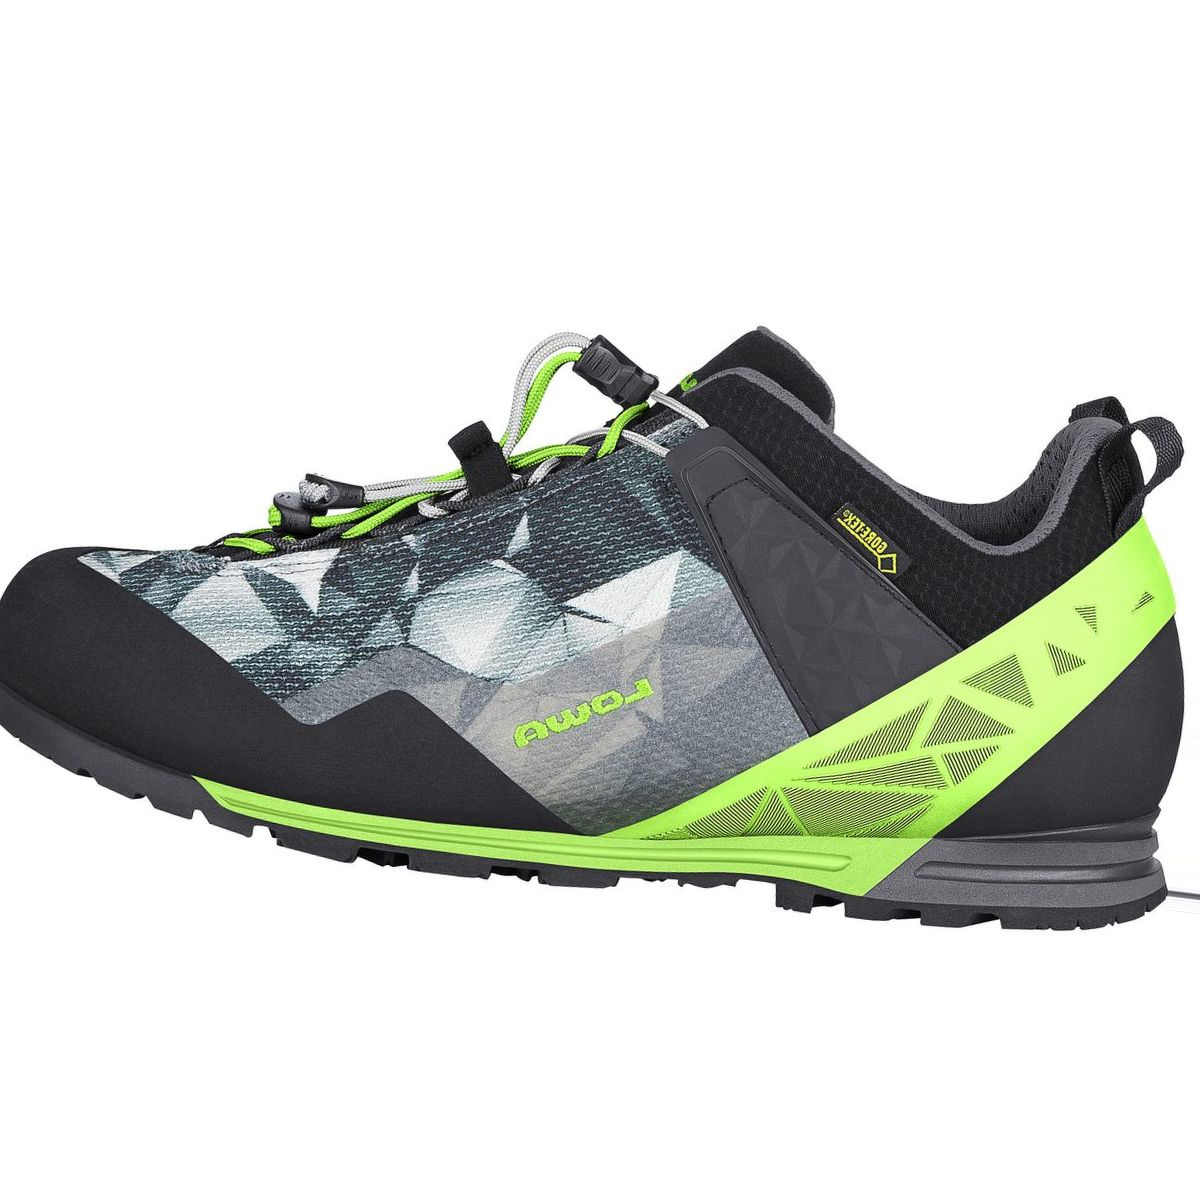 Lowa Approach Pro GTX Lo Shoe - Men's